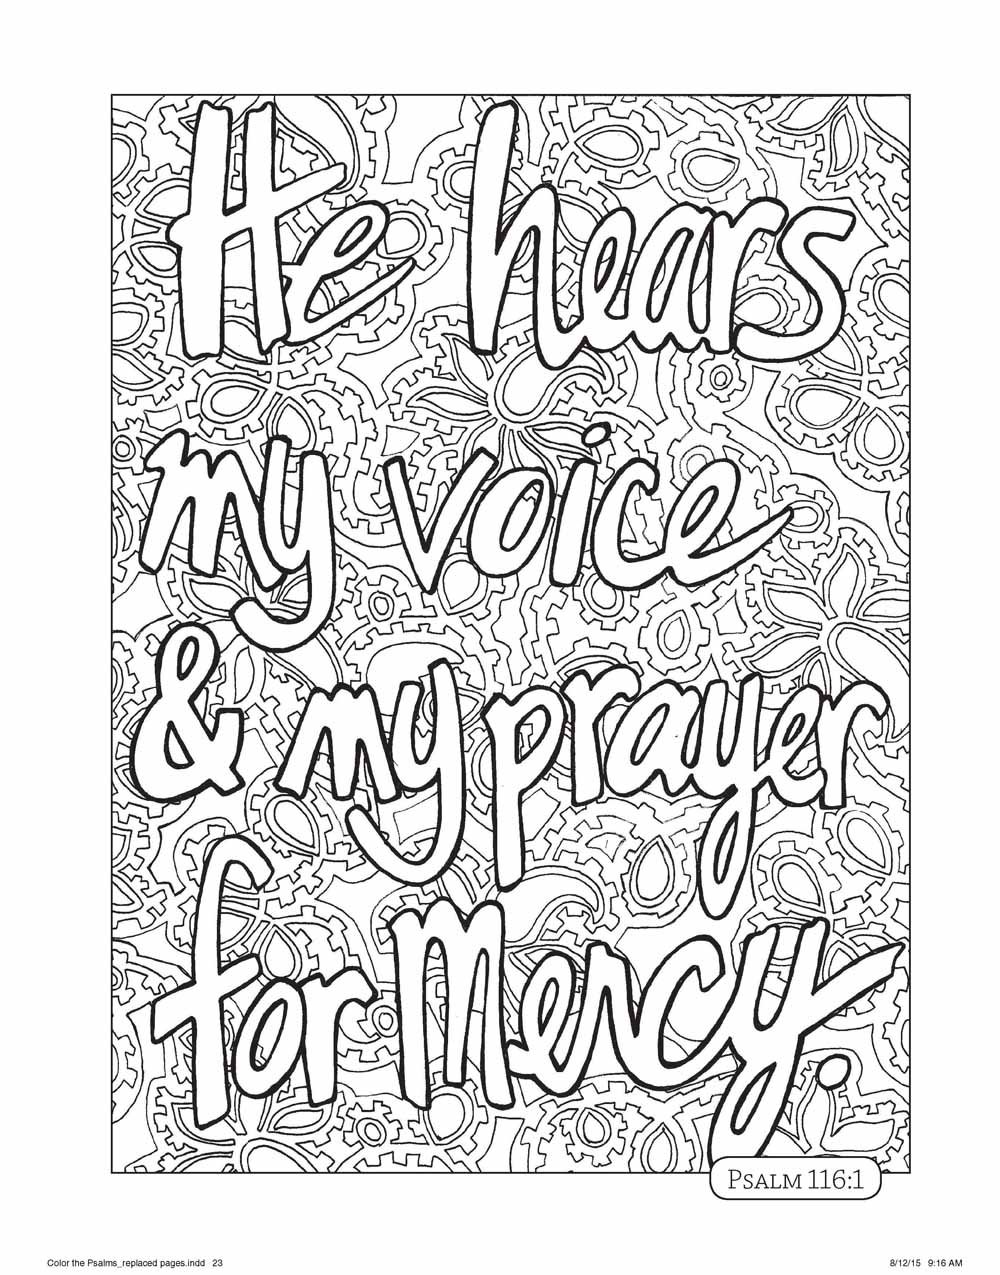 Coloring pages psalm 33 - Amazon Com Color The Psalms An Adult Coloring Book For Your Soul Color The Bible 9780736967907 Michal Sparks Books